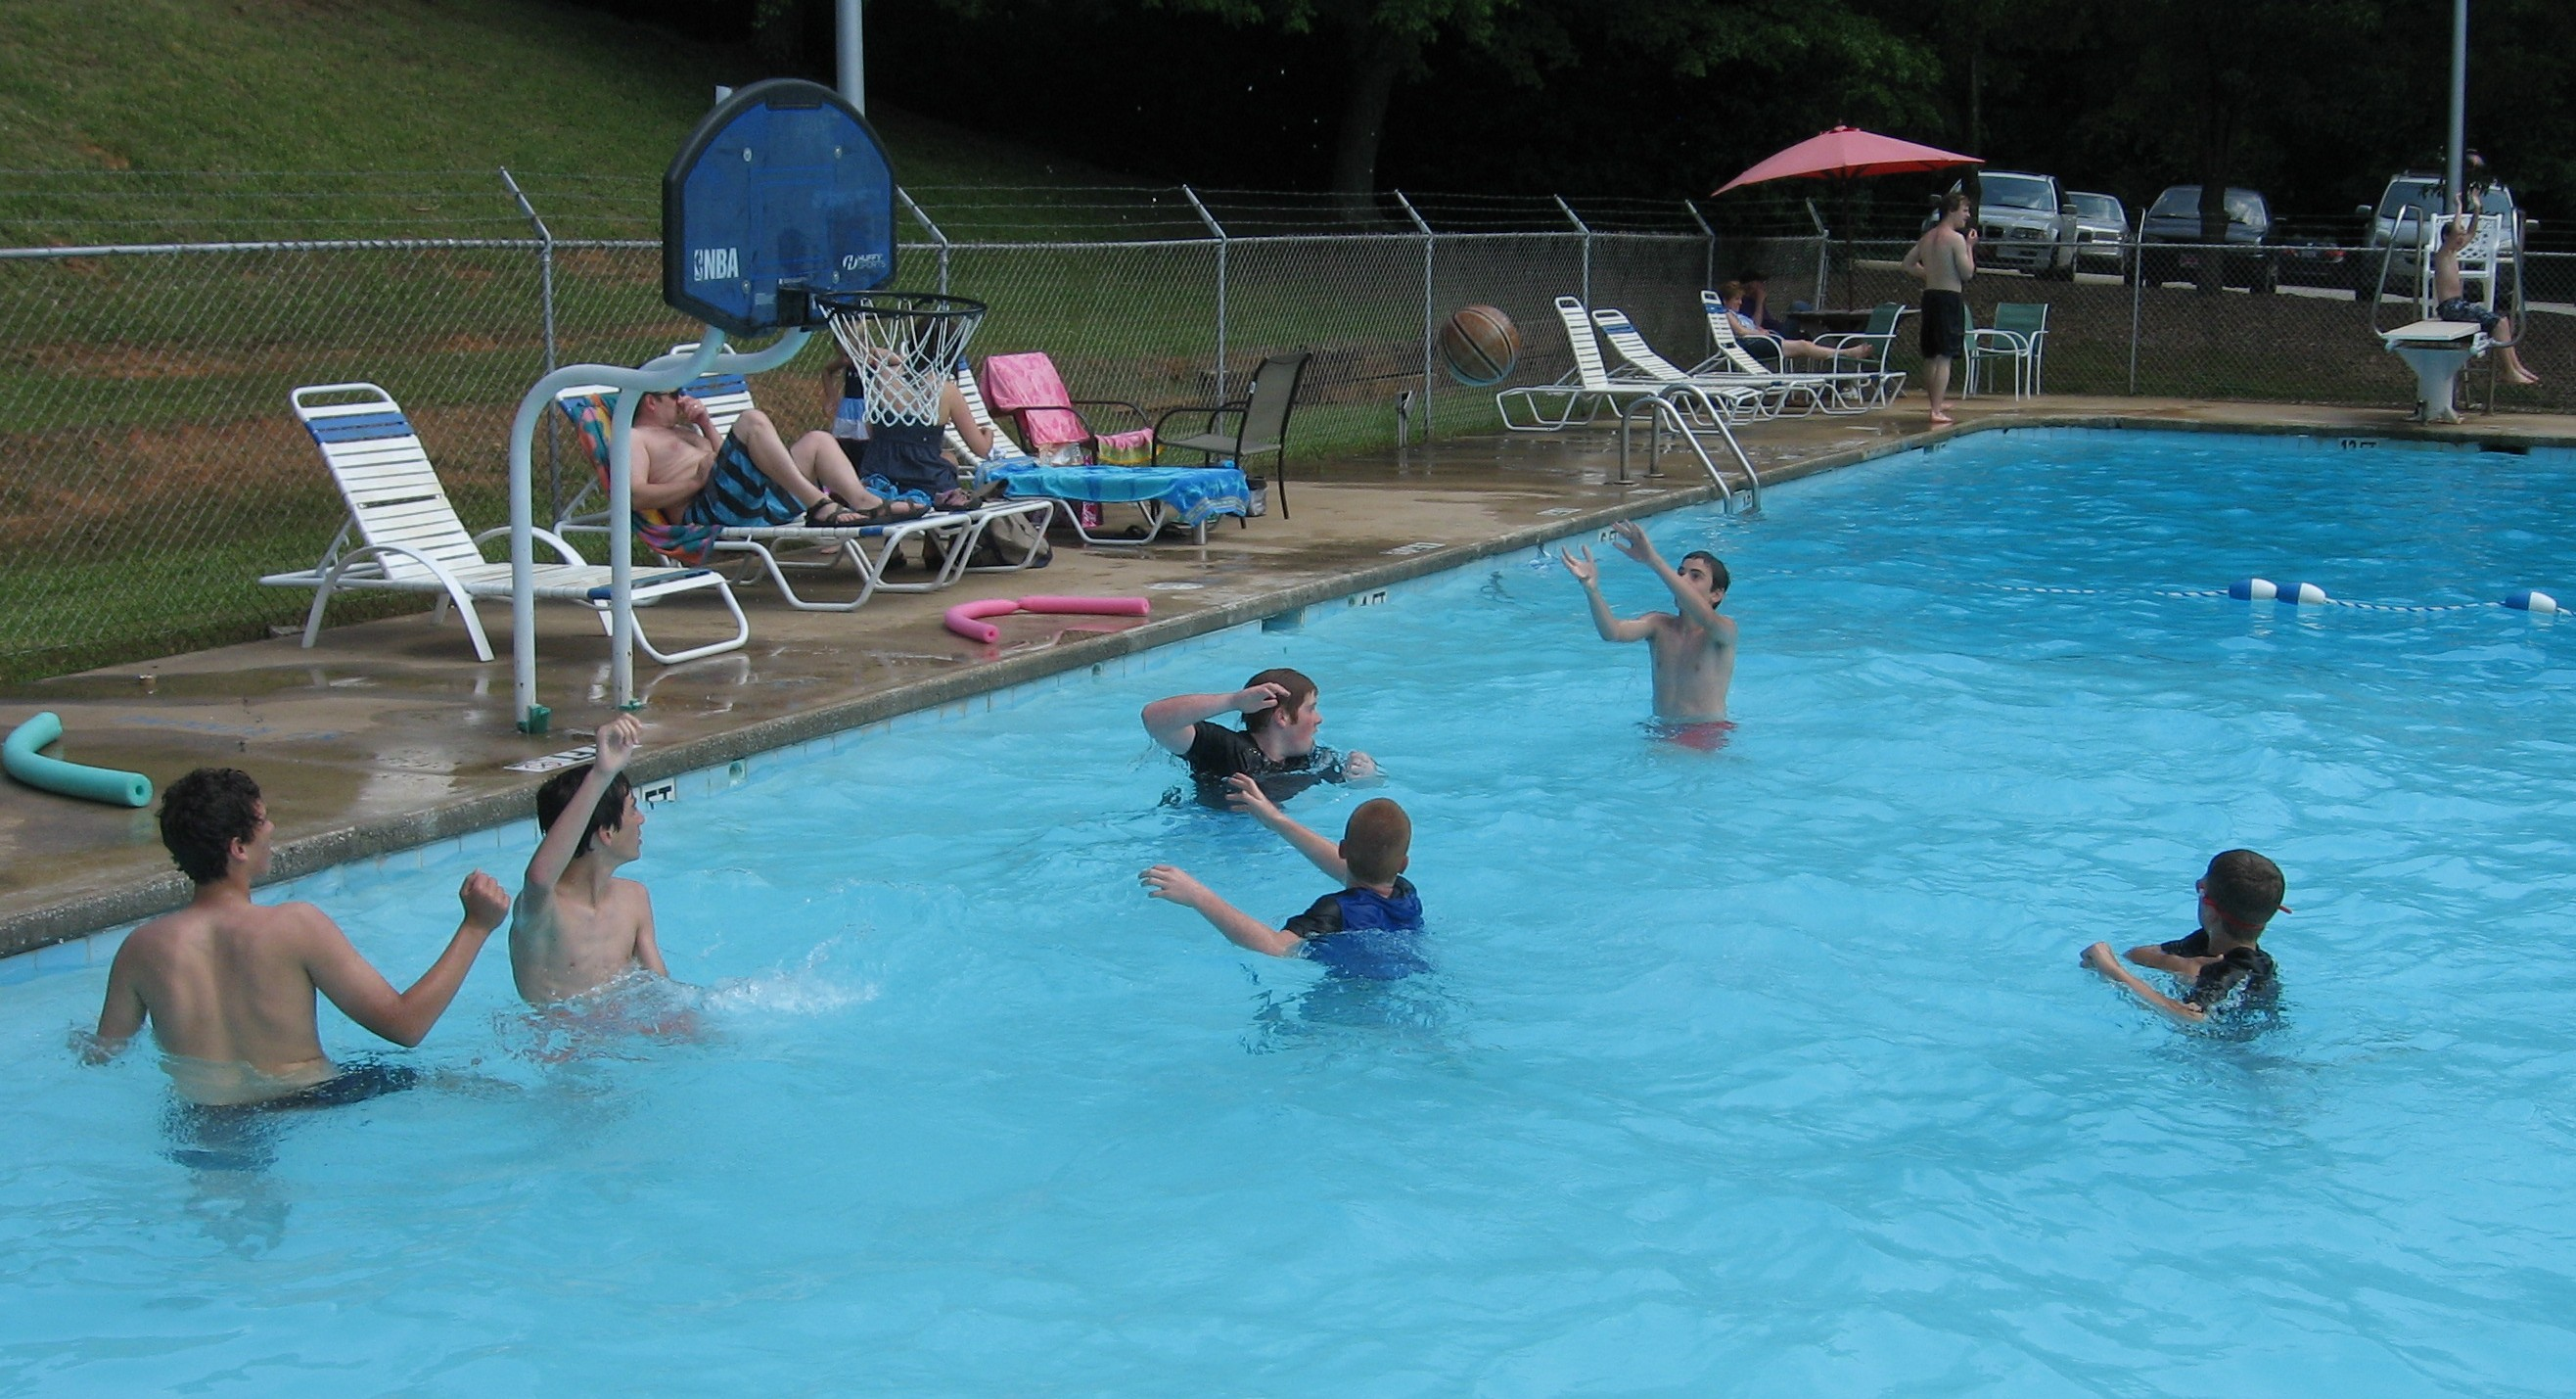 Pmp pool greenville sc swim and tennis club on greenville 39 s eastside for Swimming pool diving board tricks